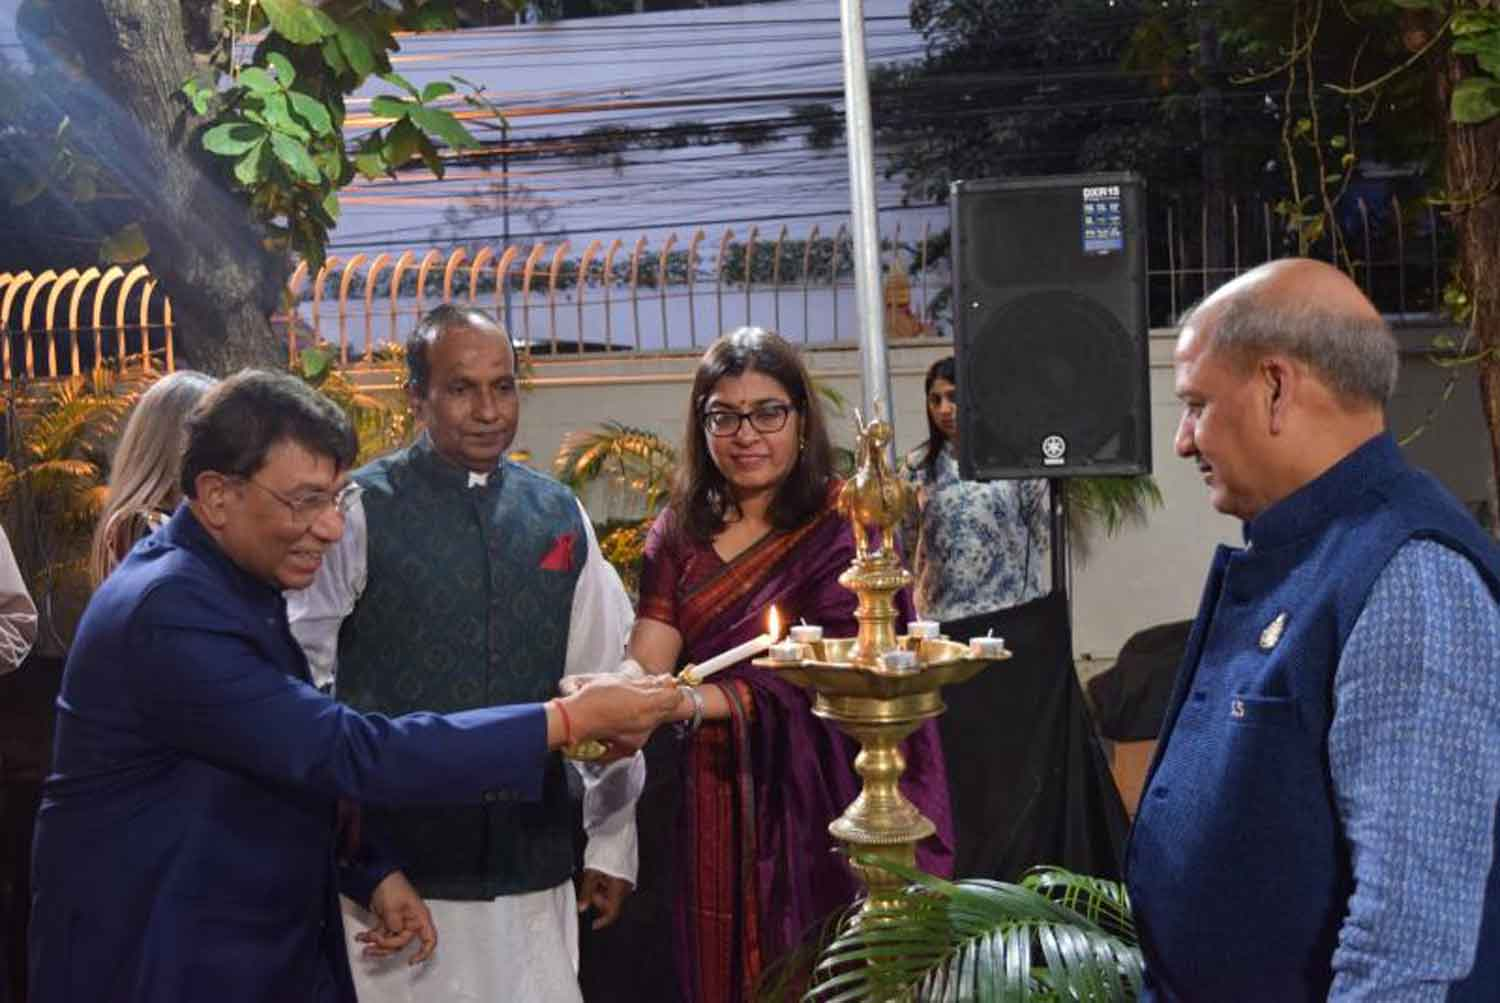 Suchitra Durai, the ambassador of India to Thailand, is lighting a candle to celebrate Pravasi Bharatiya Divas on Jan 9th. The photo was provided by courtesy of the Embassy of India.